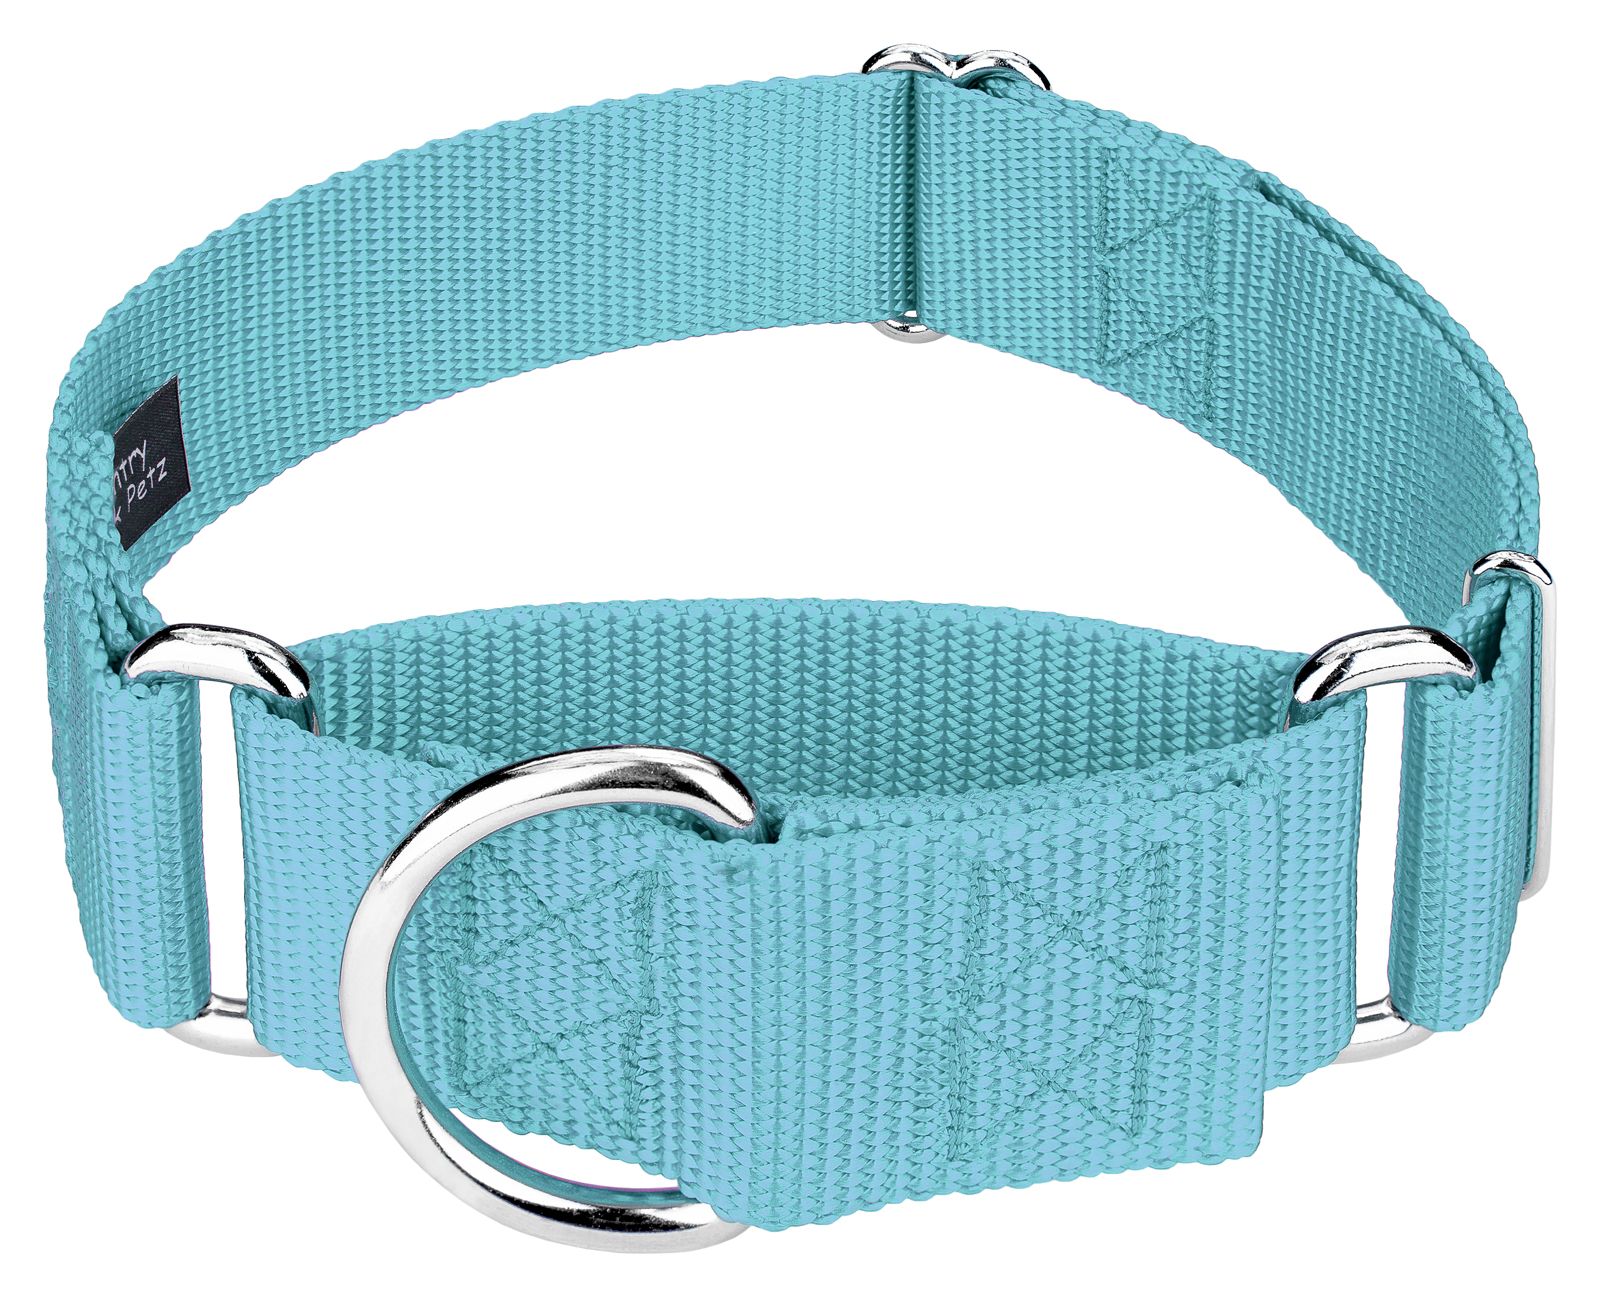 Country Brook Design | 1 1 2 Inch Martingale Heavyduty Nylon Dog Collar by Country Brook Design